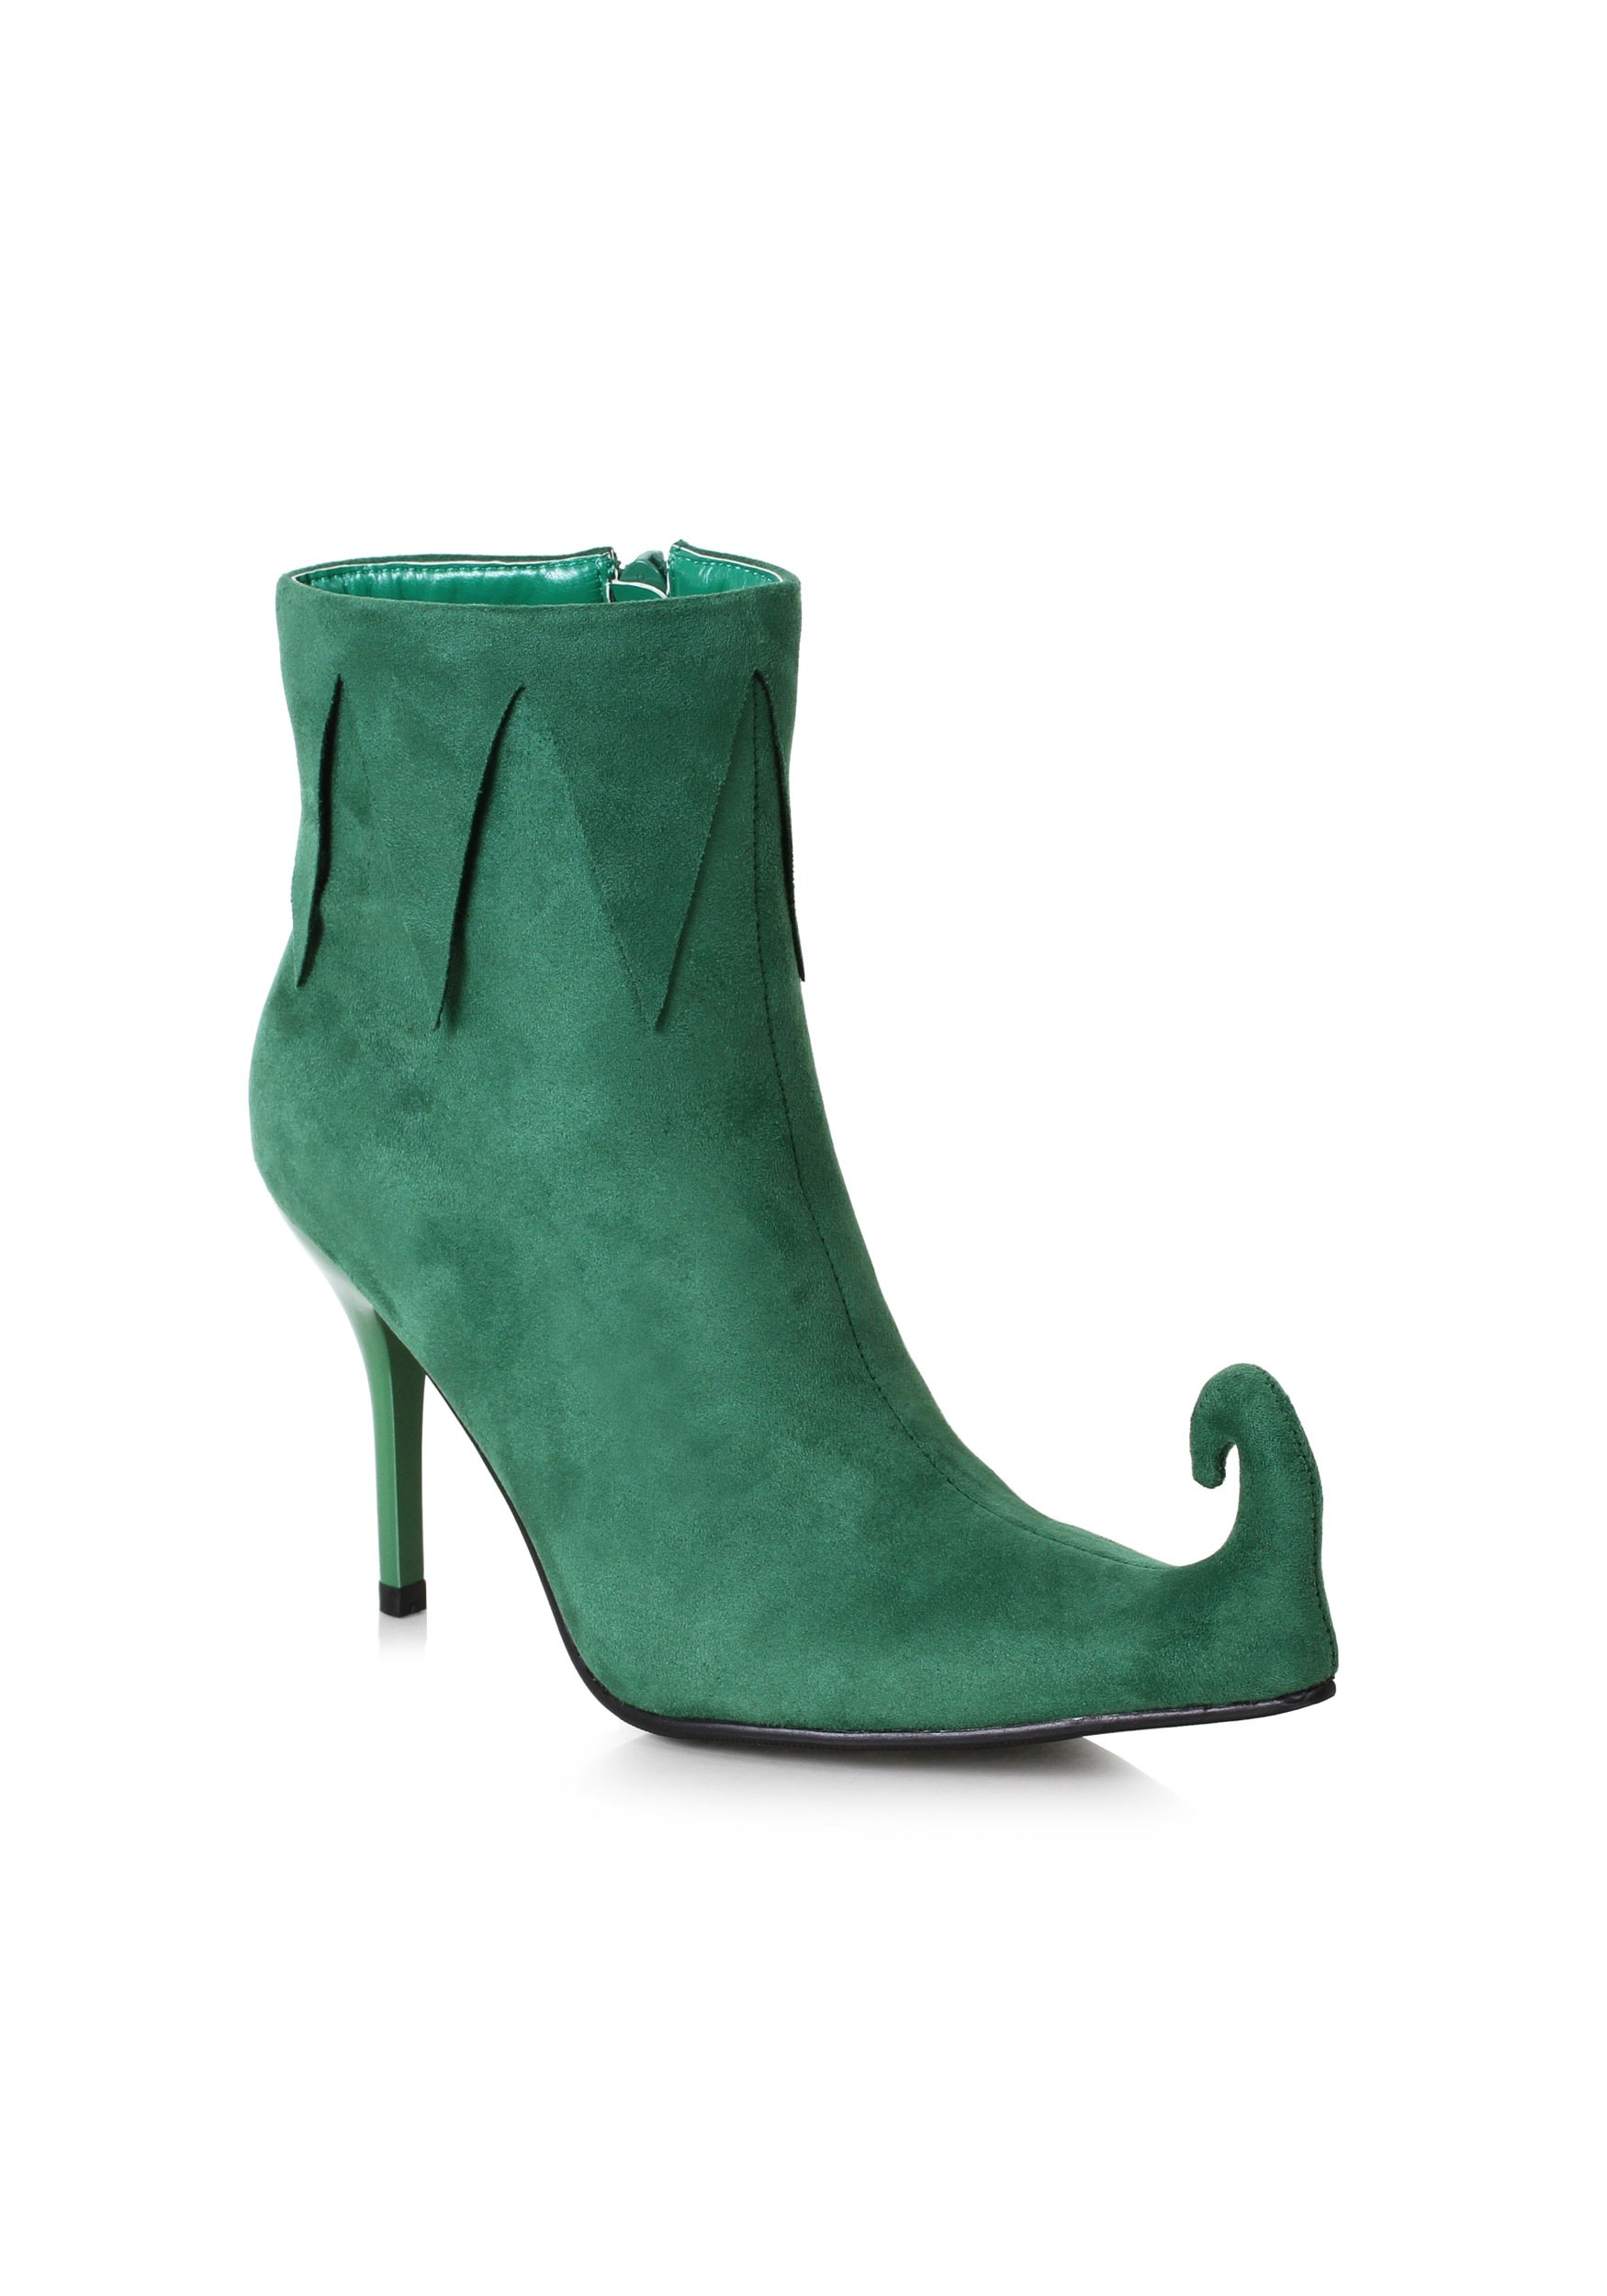 Green Elf Boots for Women